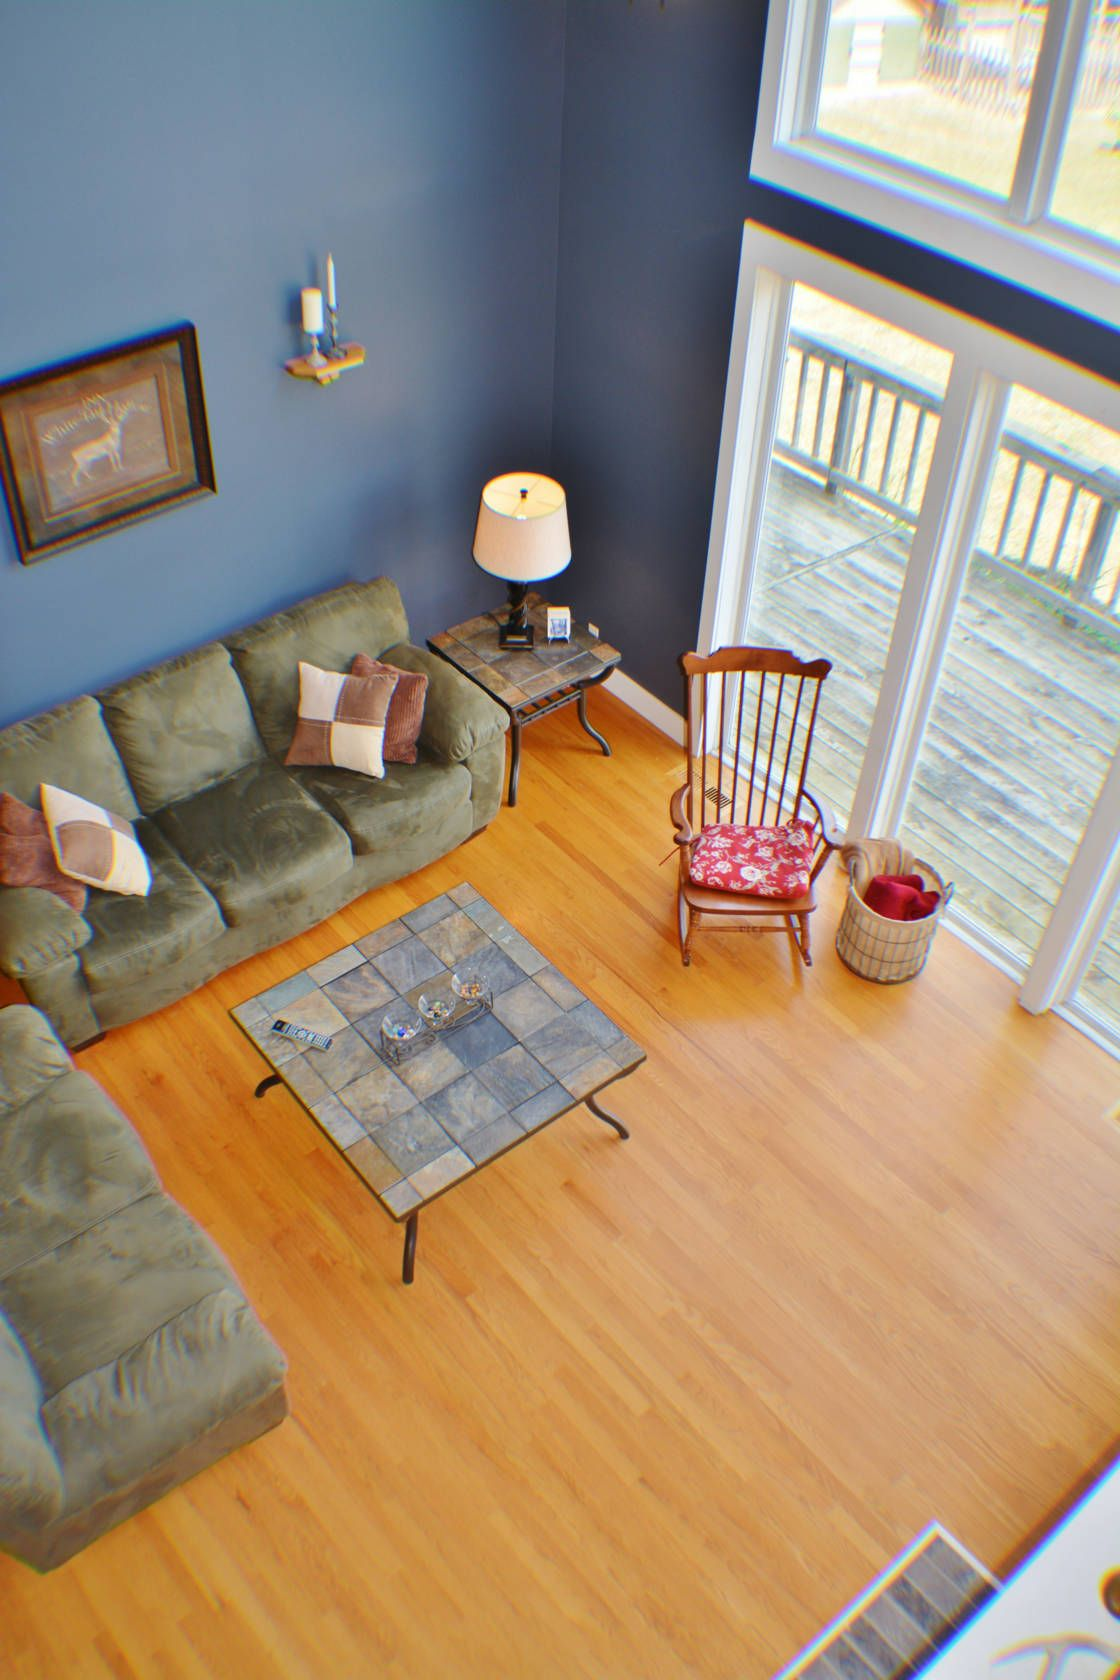 Living Room from Upstairs | Home decor, Home, Furniture